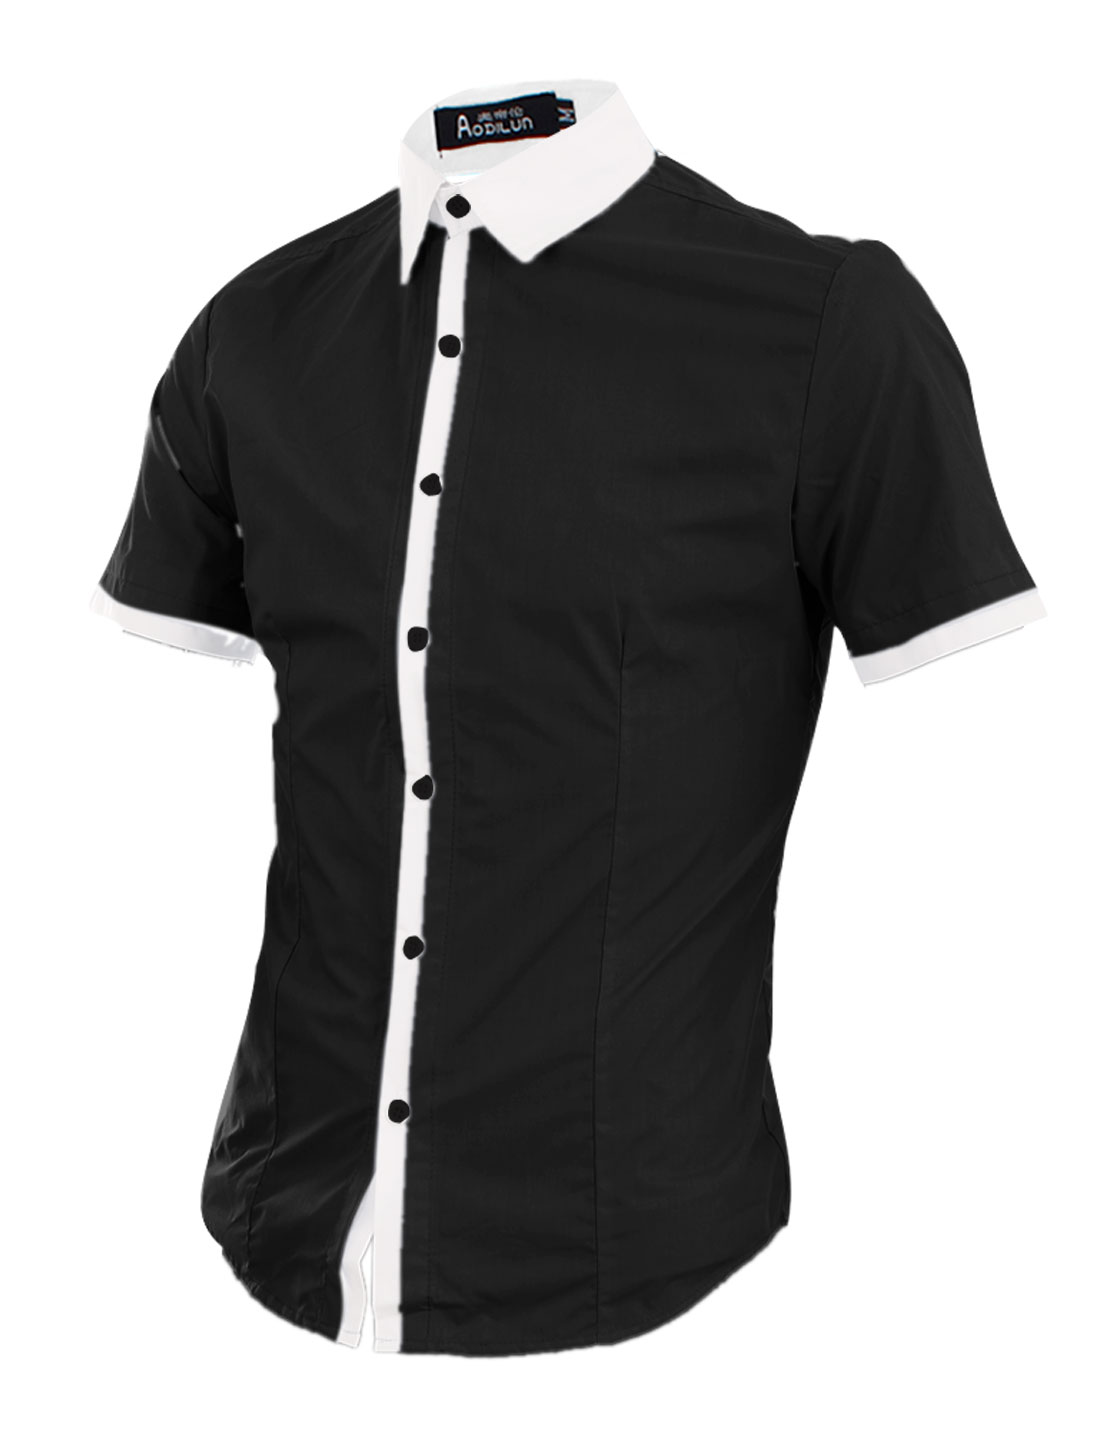 Men Point Collar Contrast Color Casual Shirt Black M